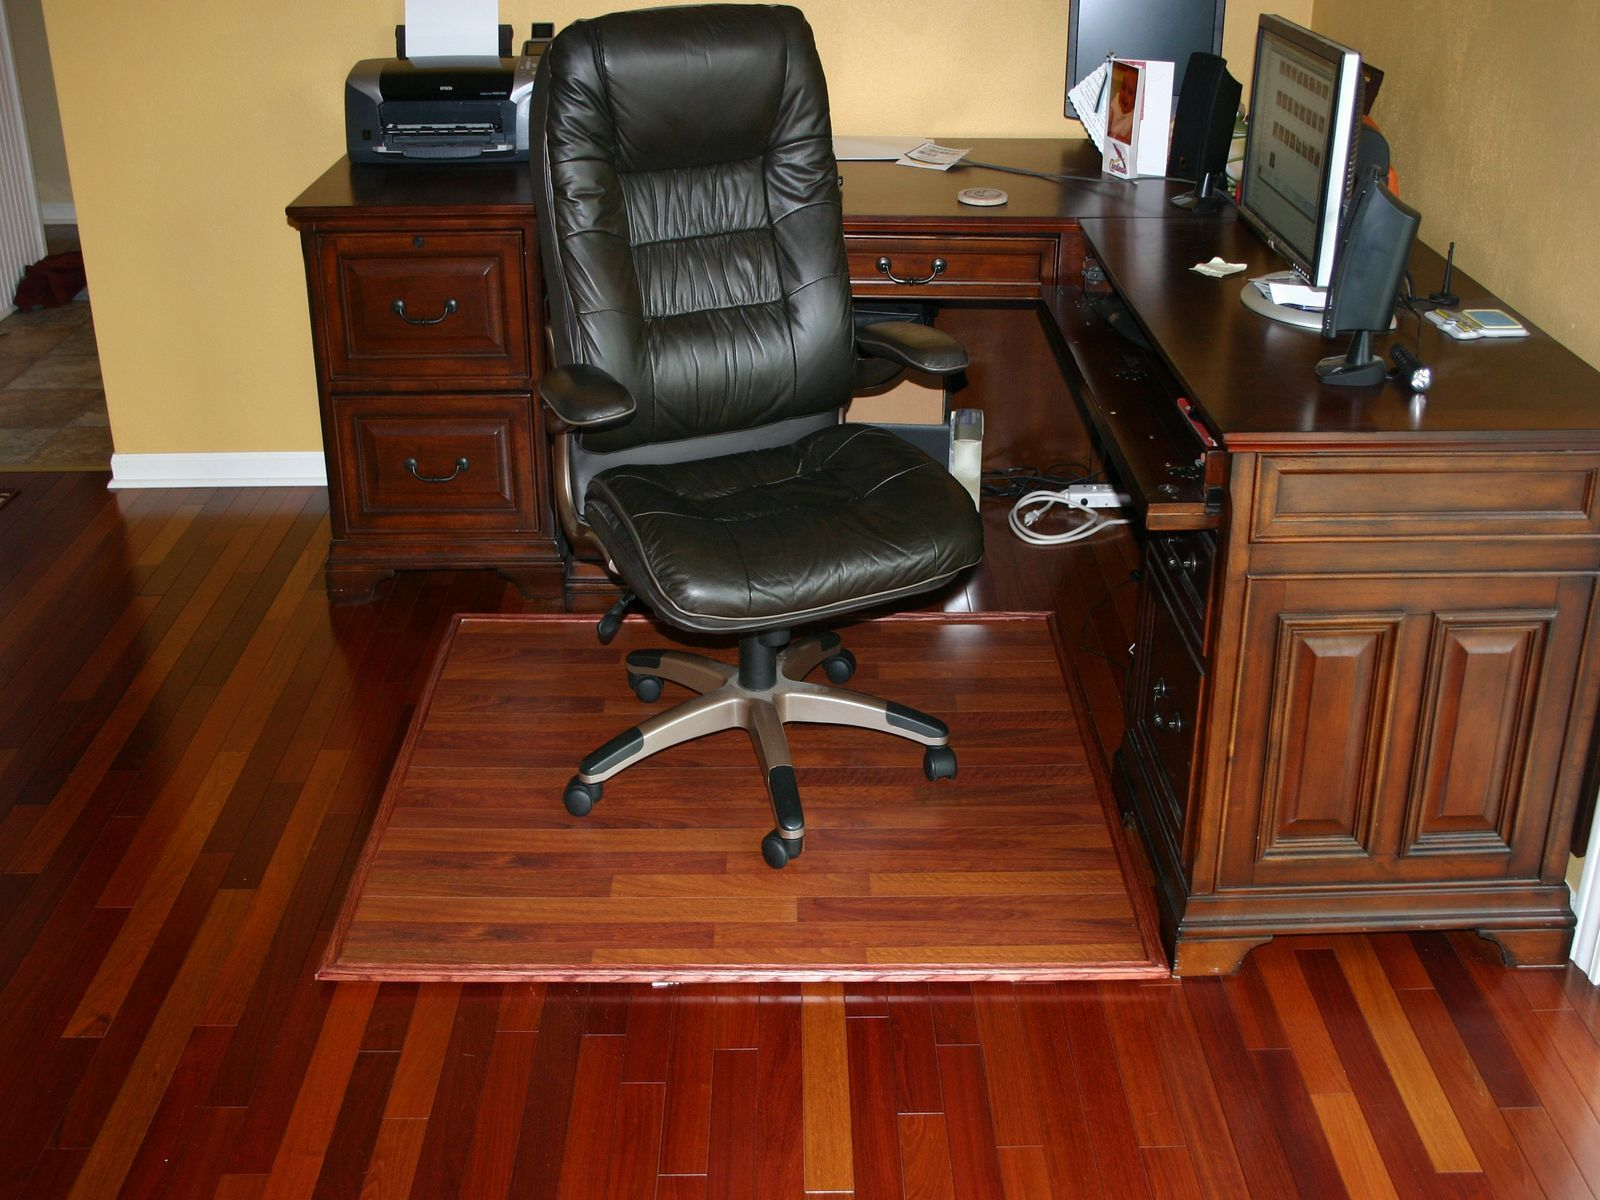 Pin by Annora on home interior Desk chair, Office chair